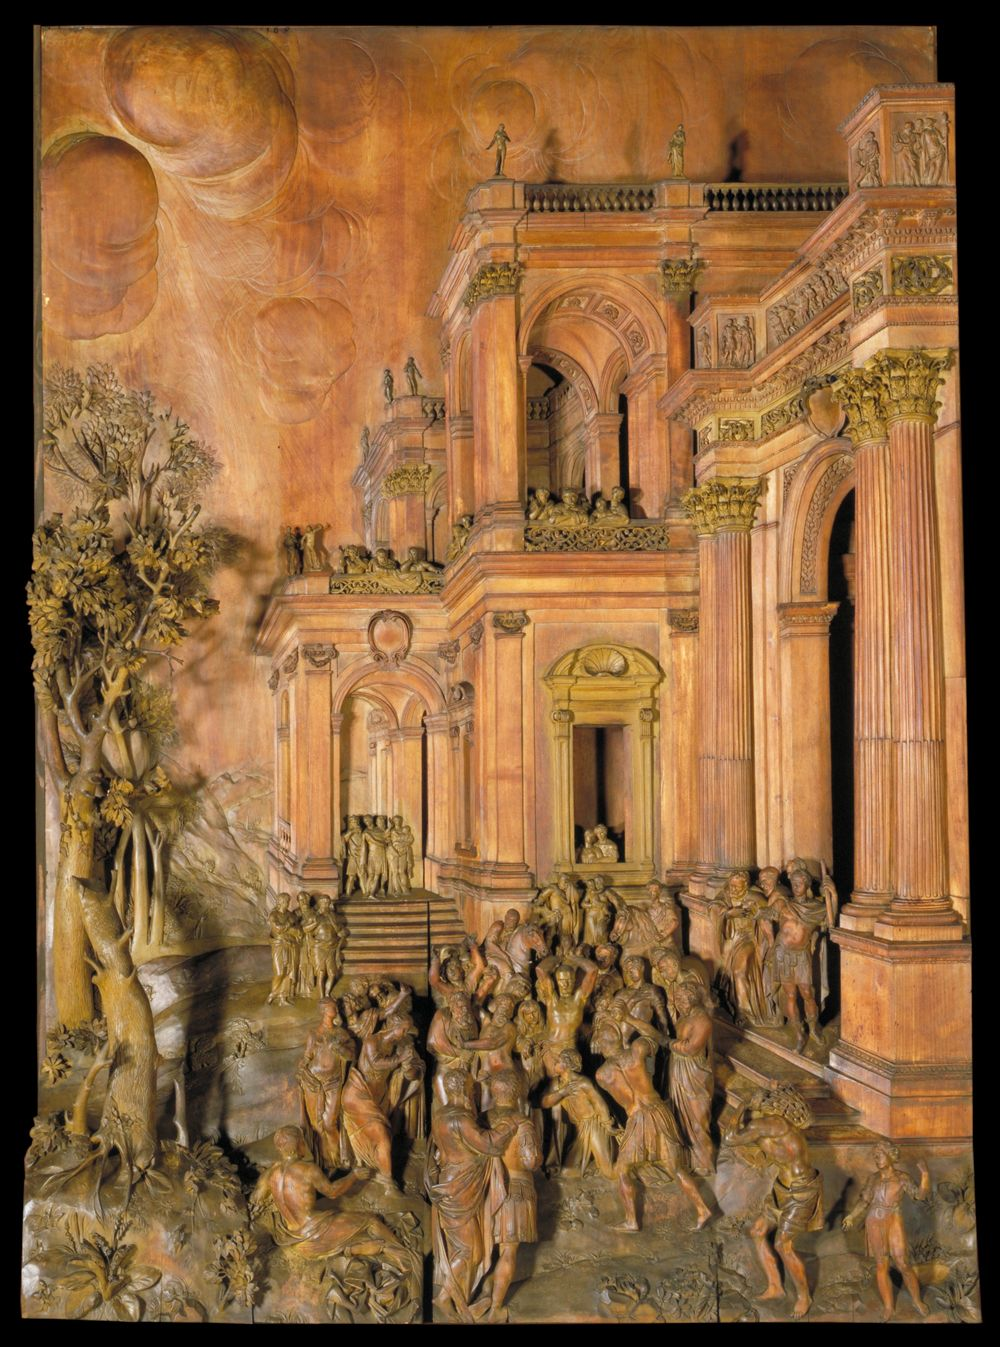 The Stoning of St Stephen - Woodcarving by Grinling Gibbons about 1680-1710.  Carved limewood and lancewood relief, with later paint Museum no. 446-1898